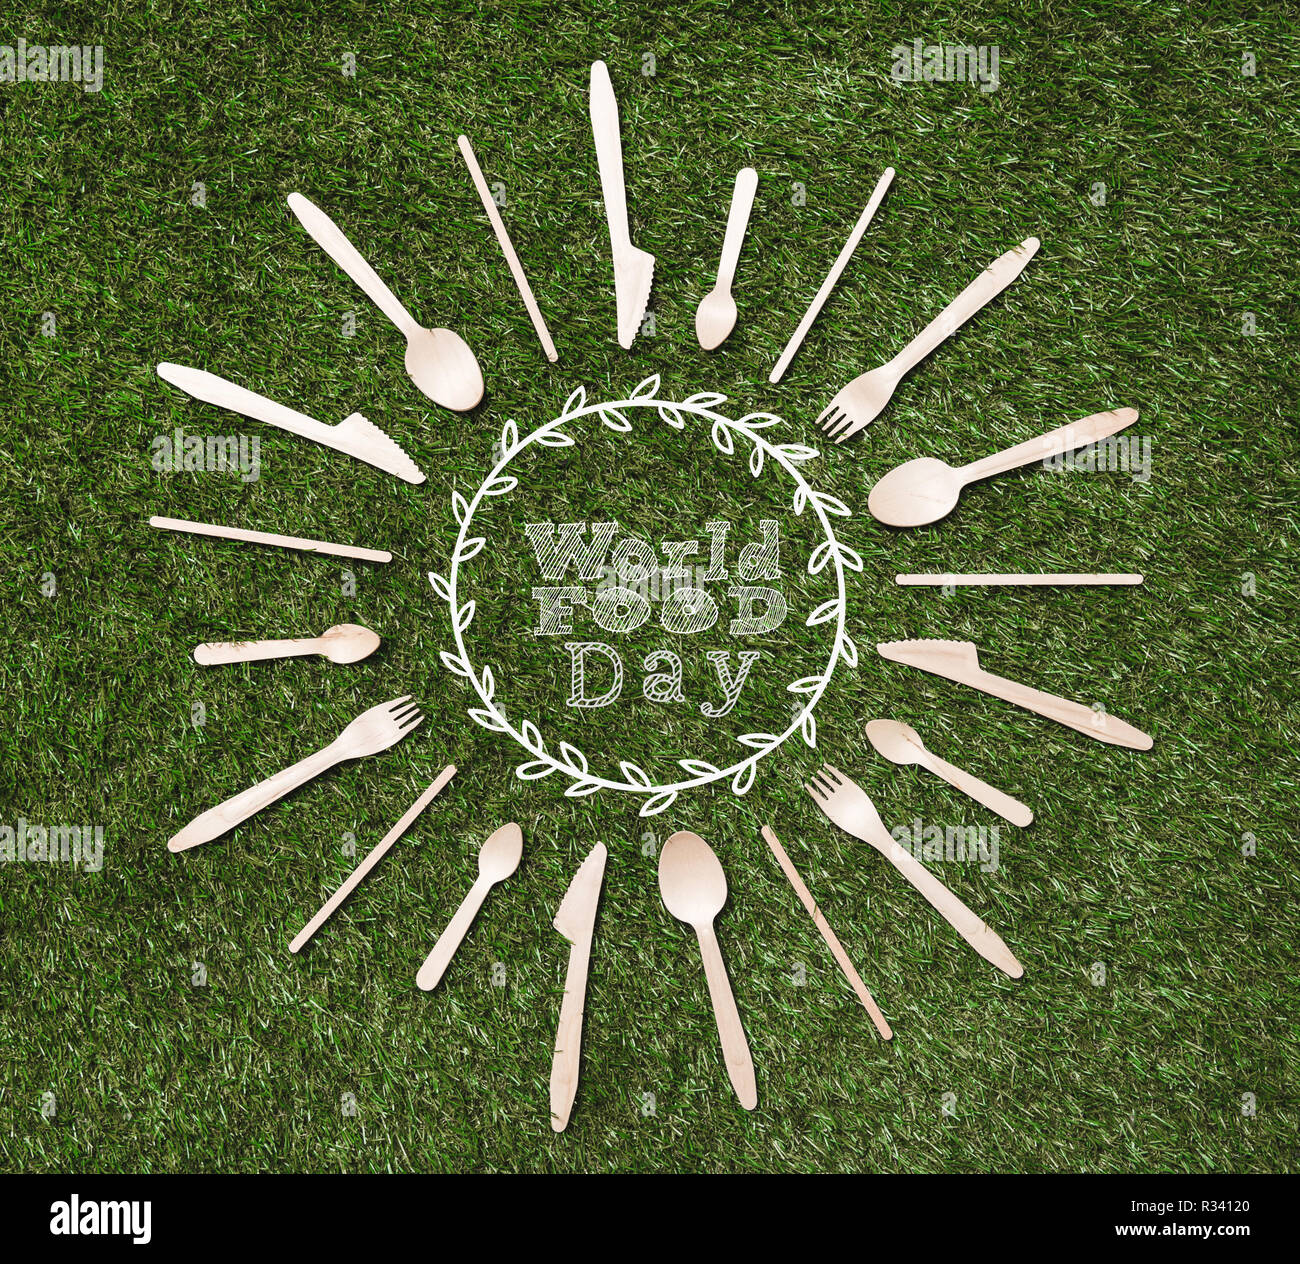 top view of wooden spoons with forks and knives in shape of sun lying on grass, world food day inscription - Stock Image